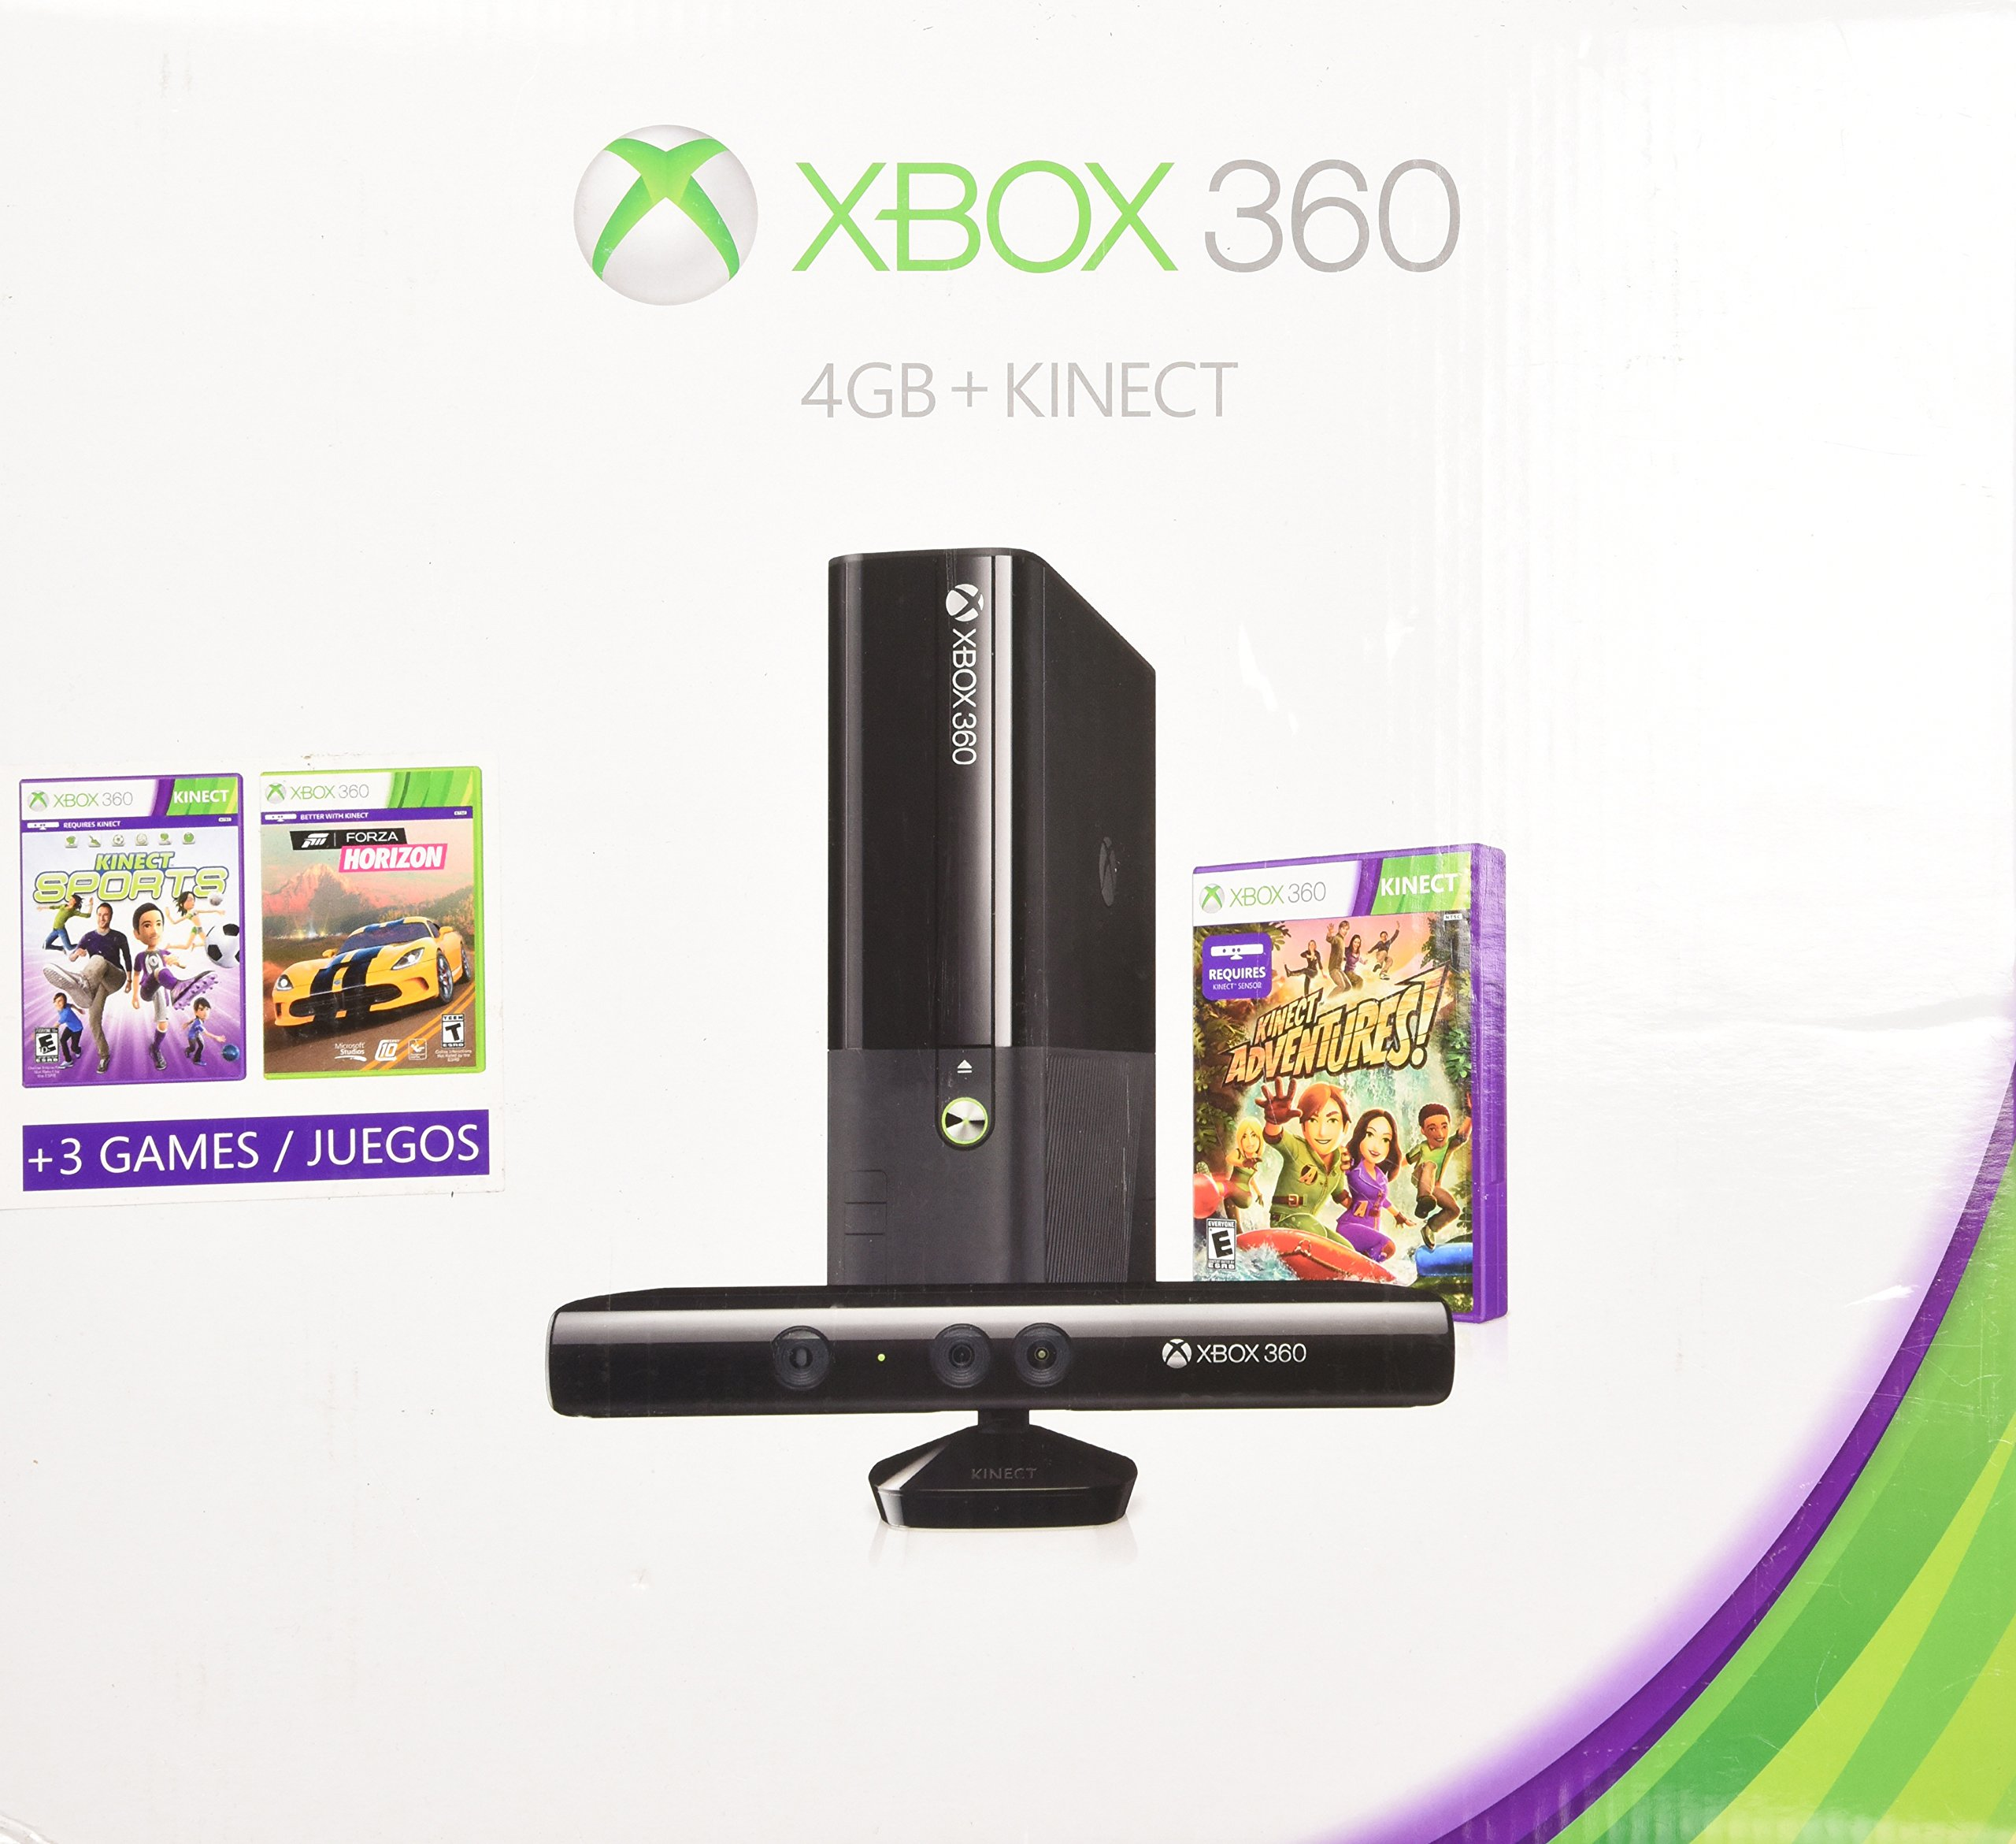 Xbox 360 4gb Kinect Holiday Bundle with 3 Games Forza Horizons, Kinect Sports, and Kinect Adventures by Microsoft